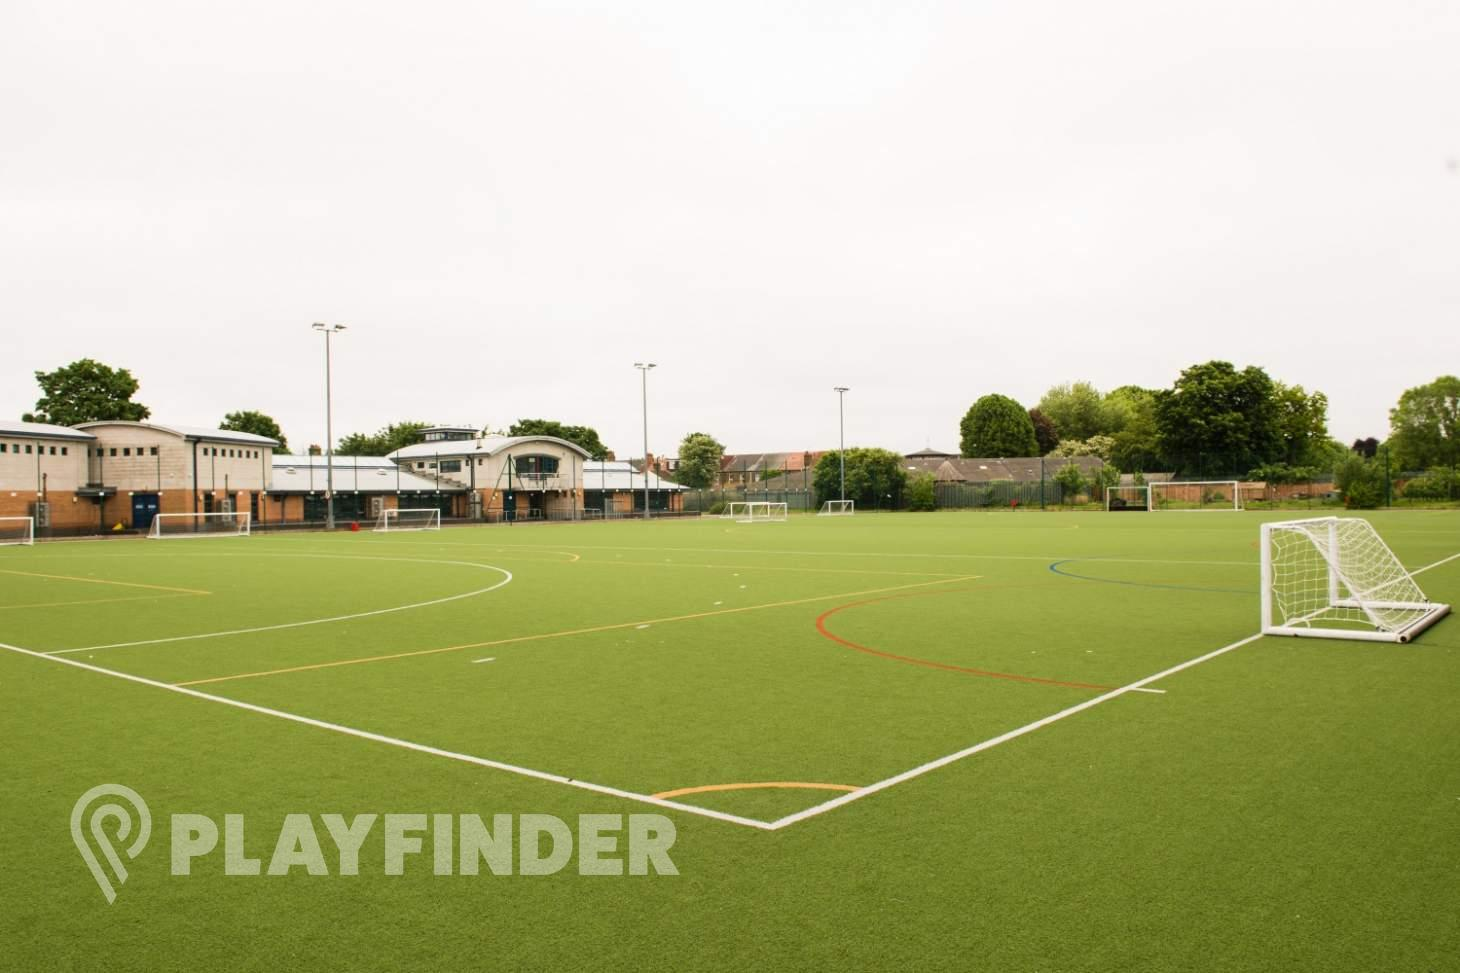 Featherstone Sports Centre 6 a side | Astroturf football pitch